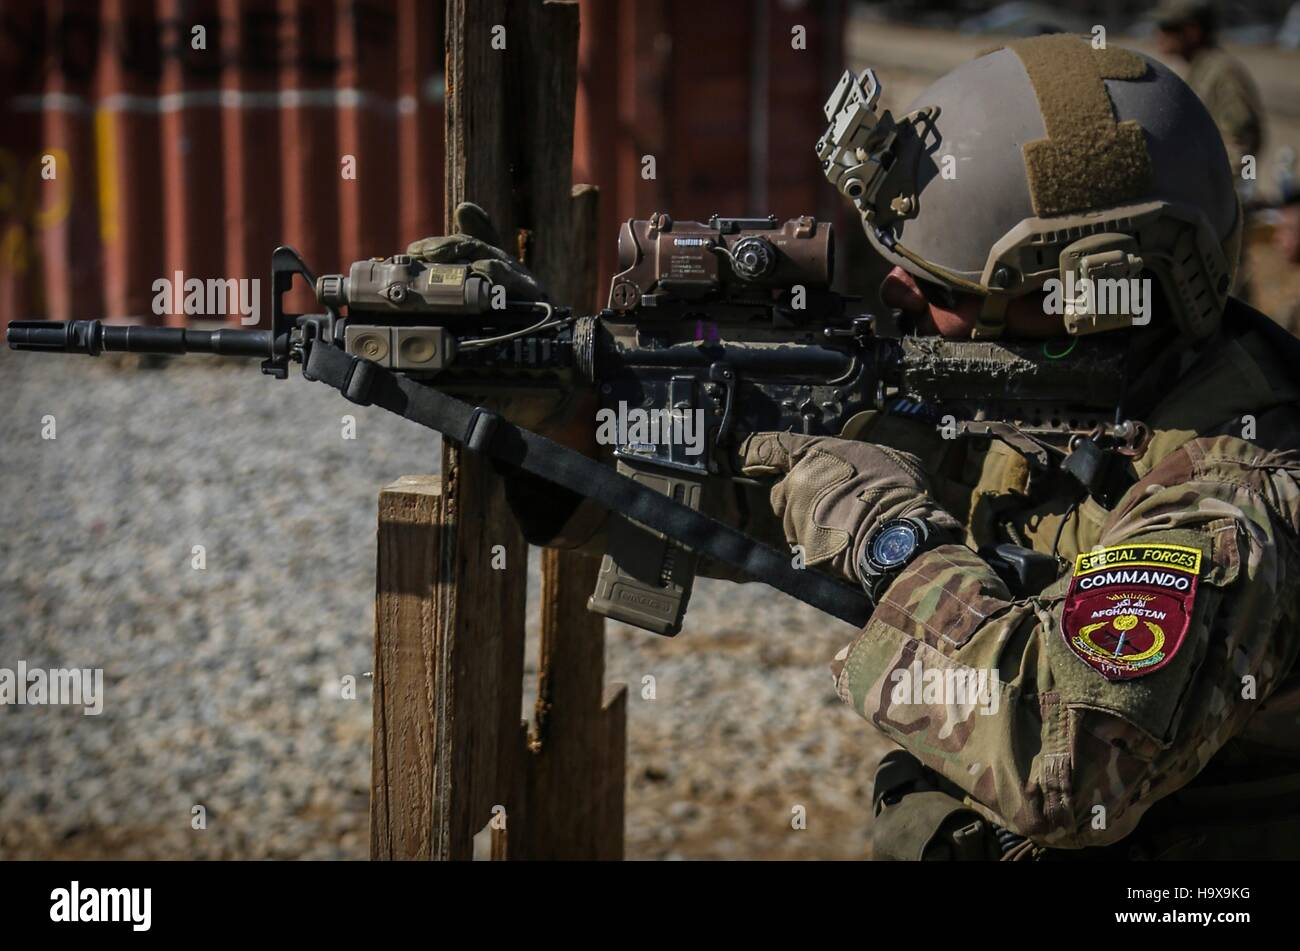 An Afghan special forces commando practices his marksmanship at a shooting range November 1, 2013 in the Kabul province, - Stock Image